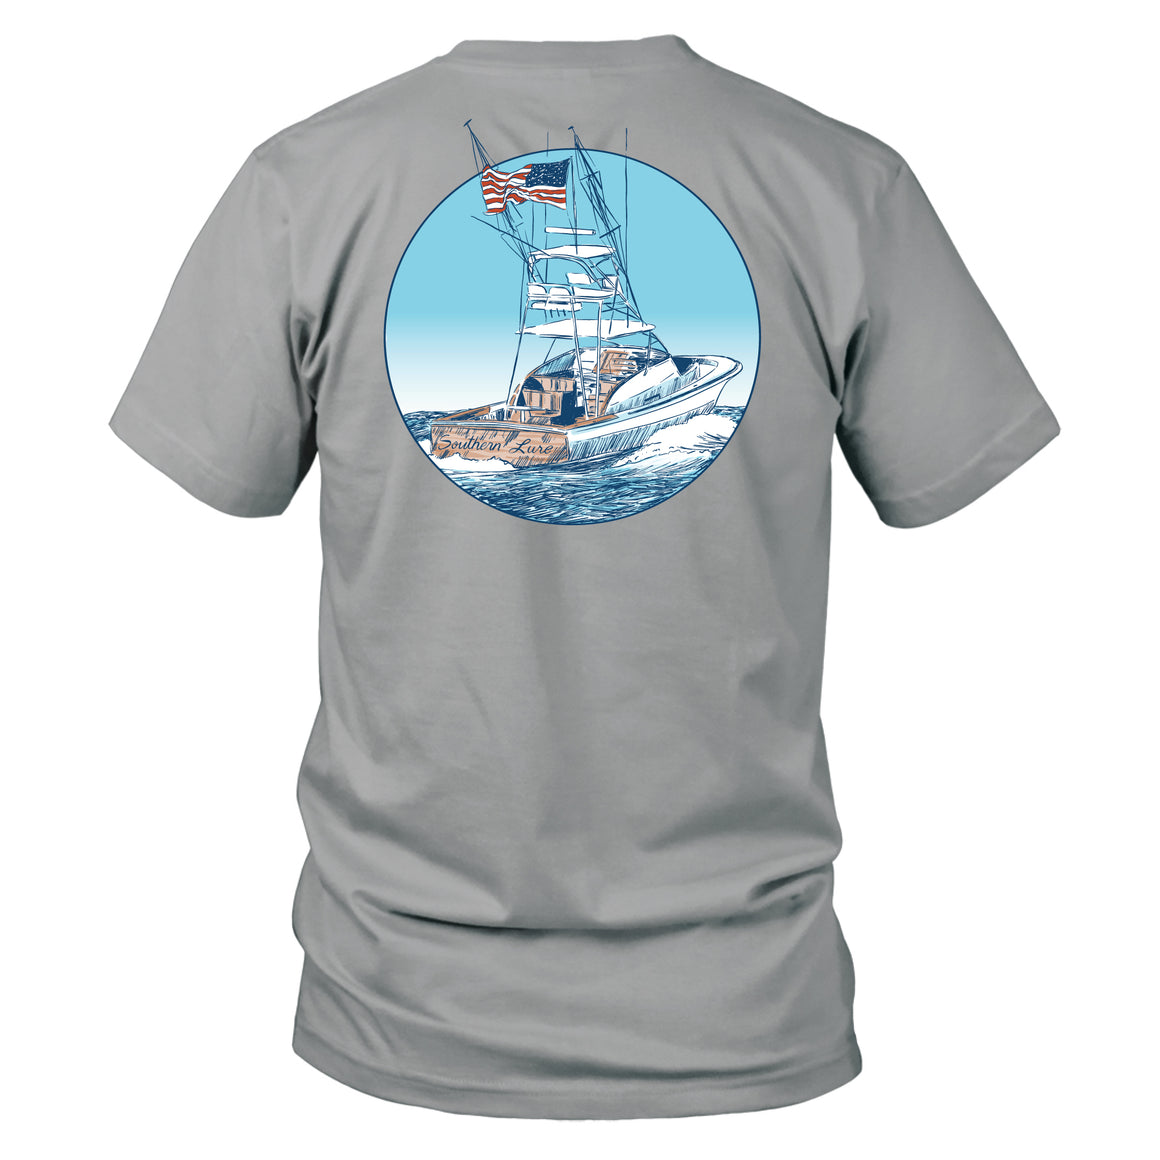 Youth & Toddler Short Sleeve Cotton Tee - USA Boat - Granite